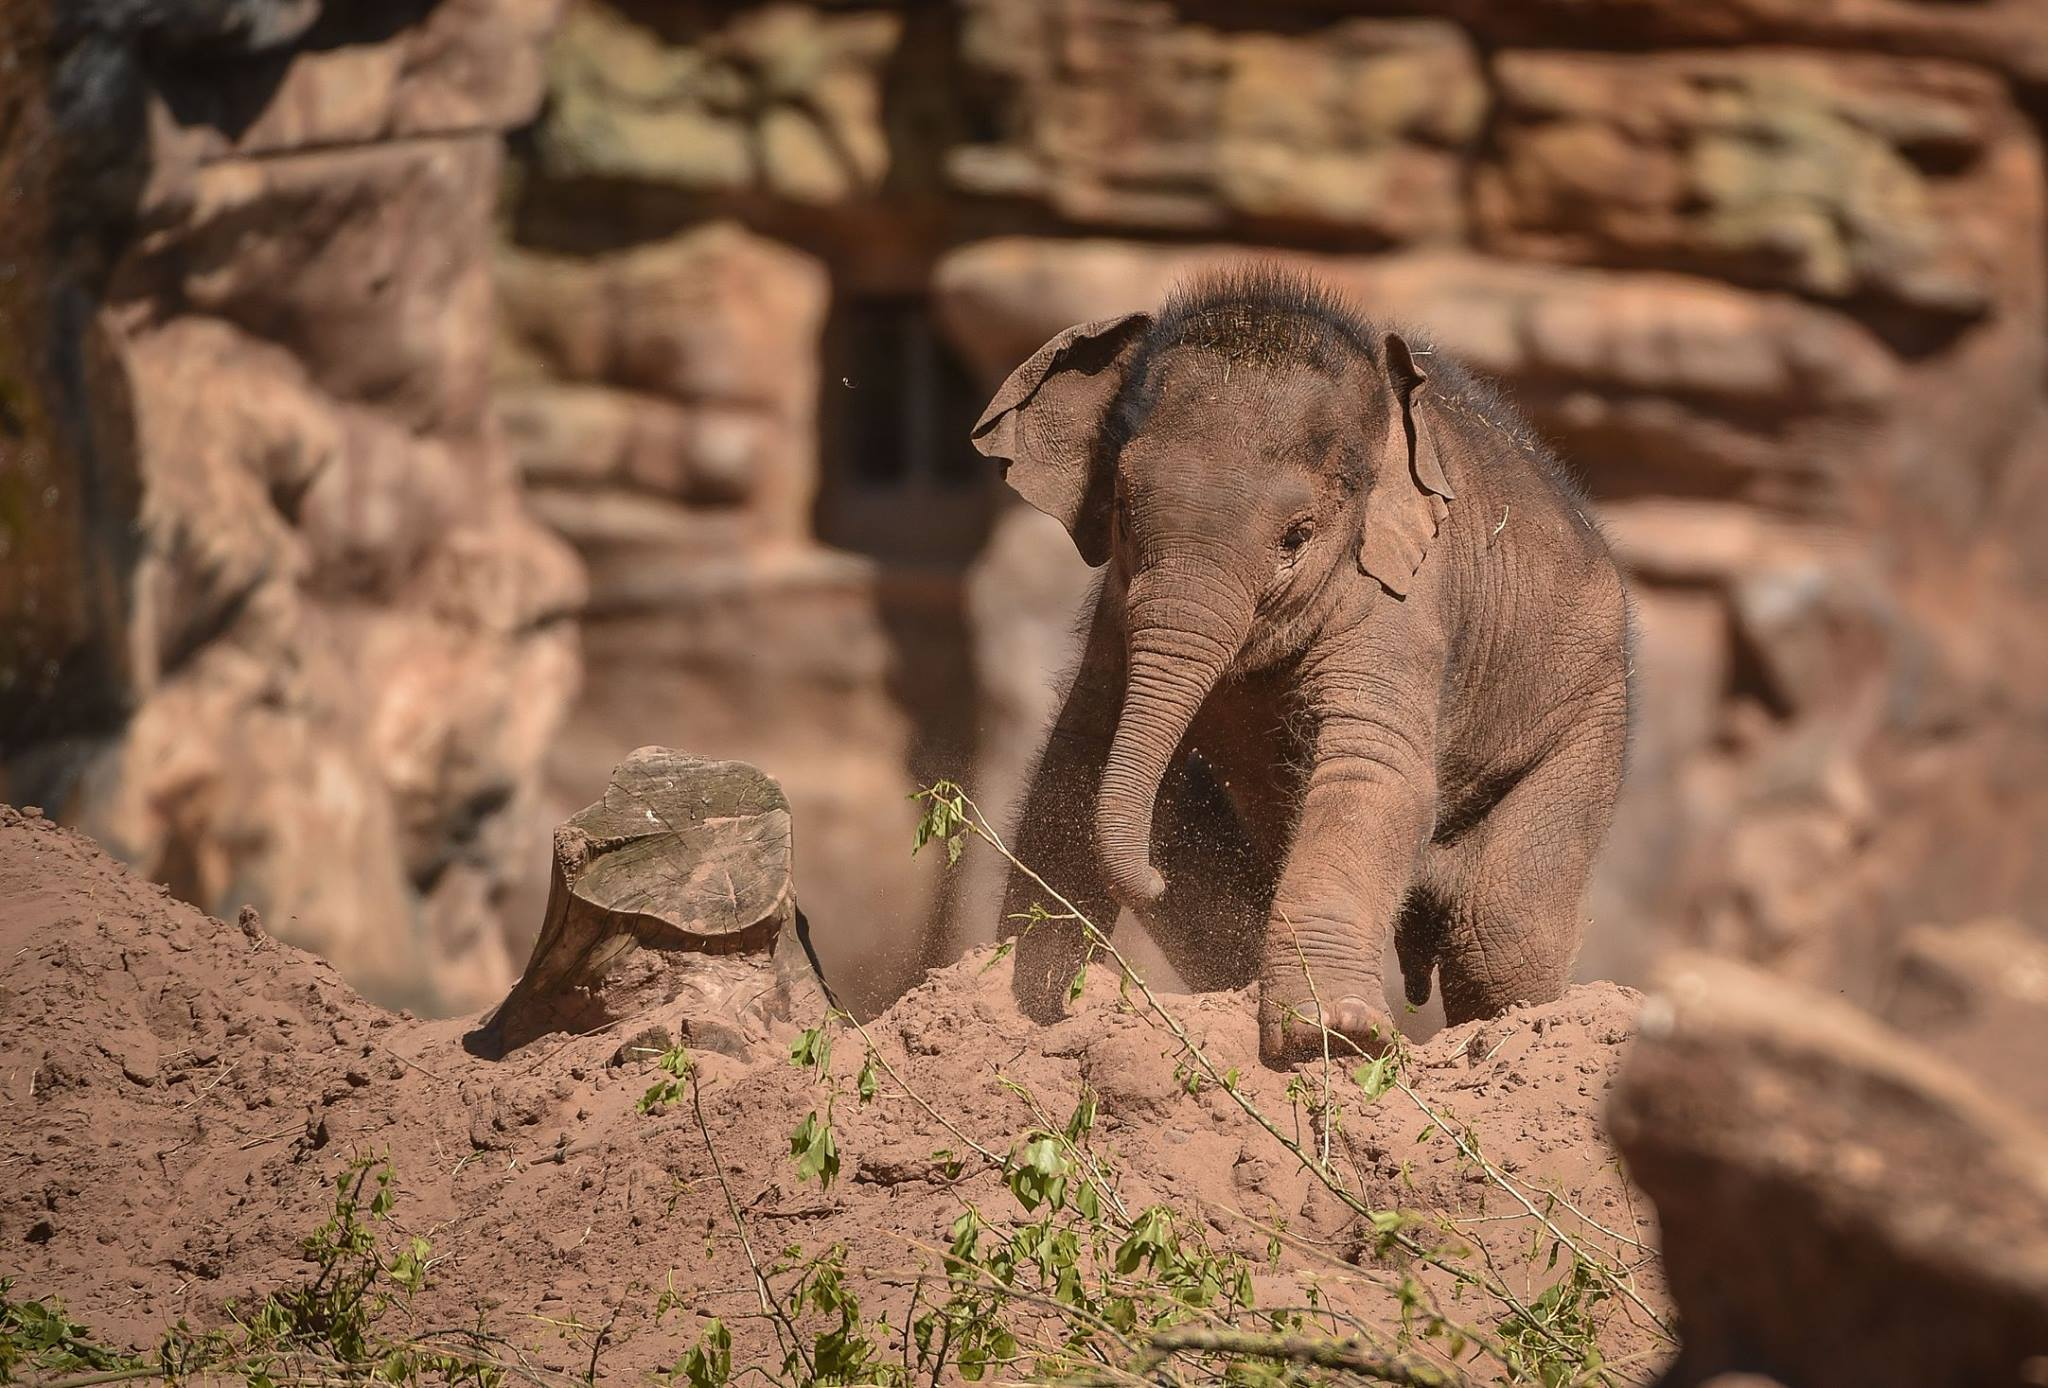 Image from Chester Zoo/Facebook